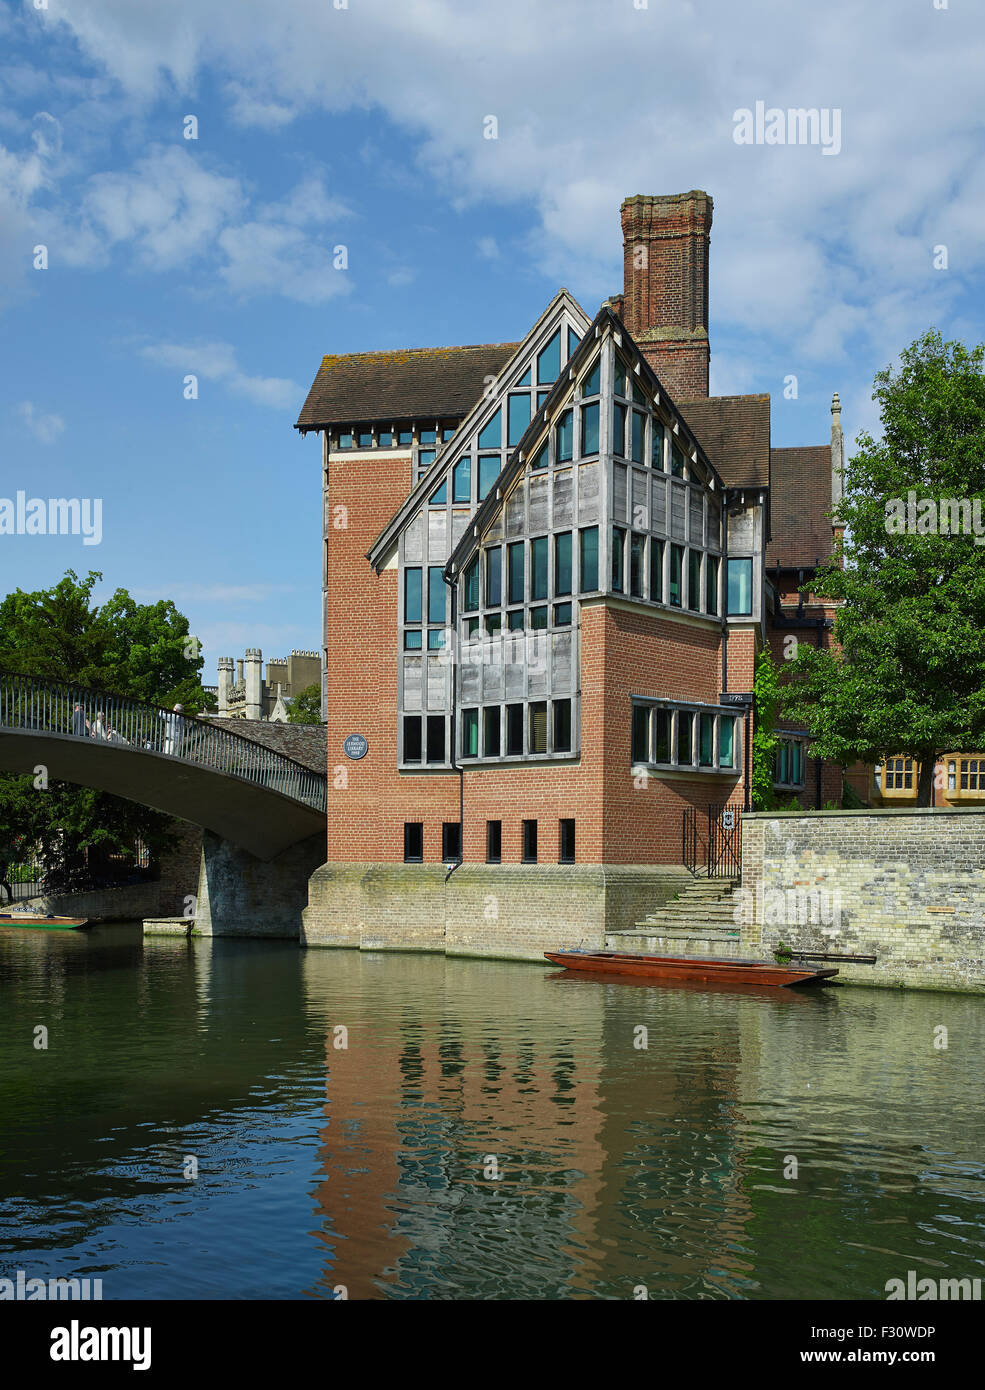 Cambridge, Trinity Hall, Jerwood Library by Freeland Rees Roberts, 1990s - Stock Image